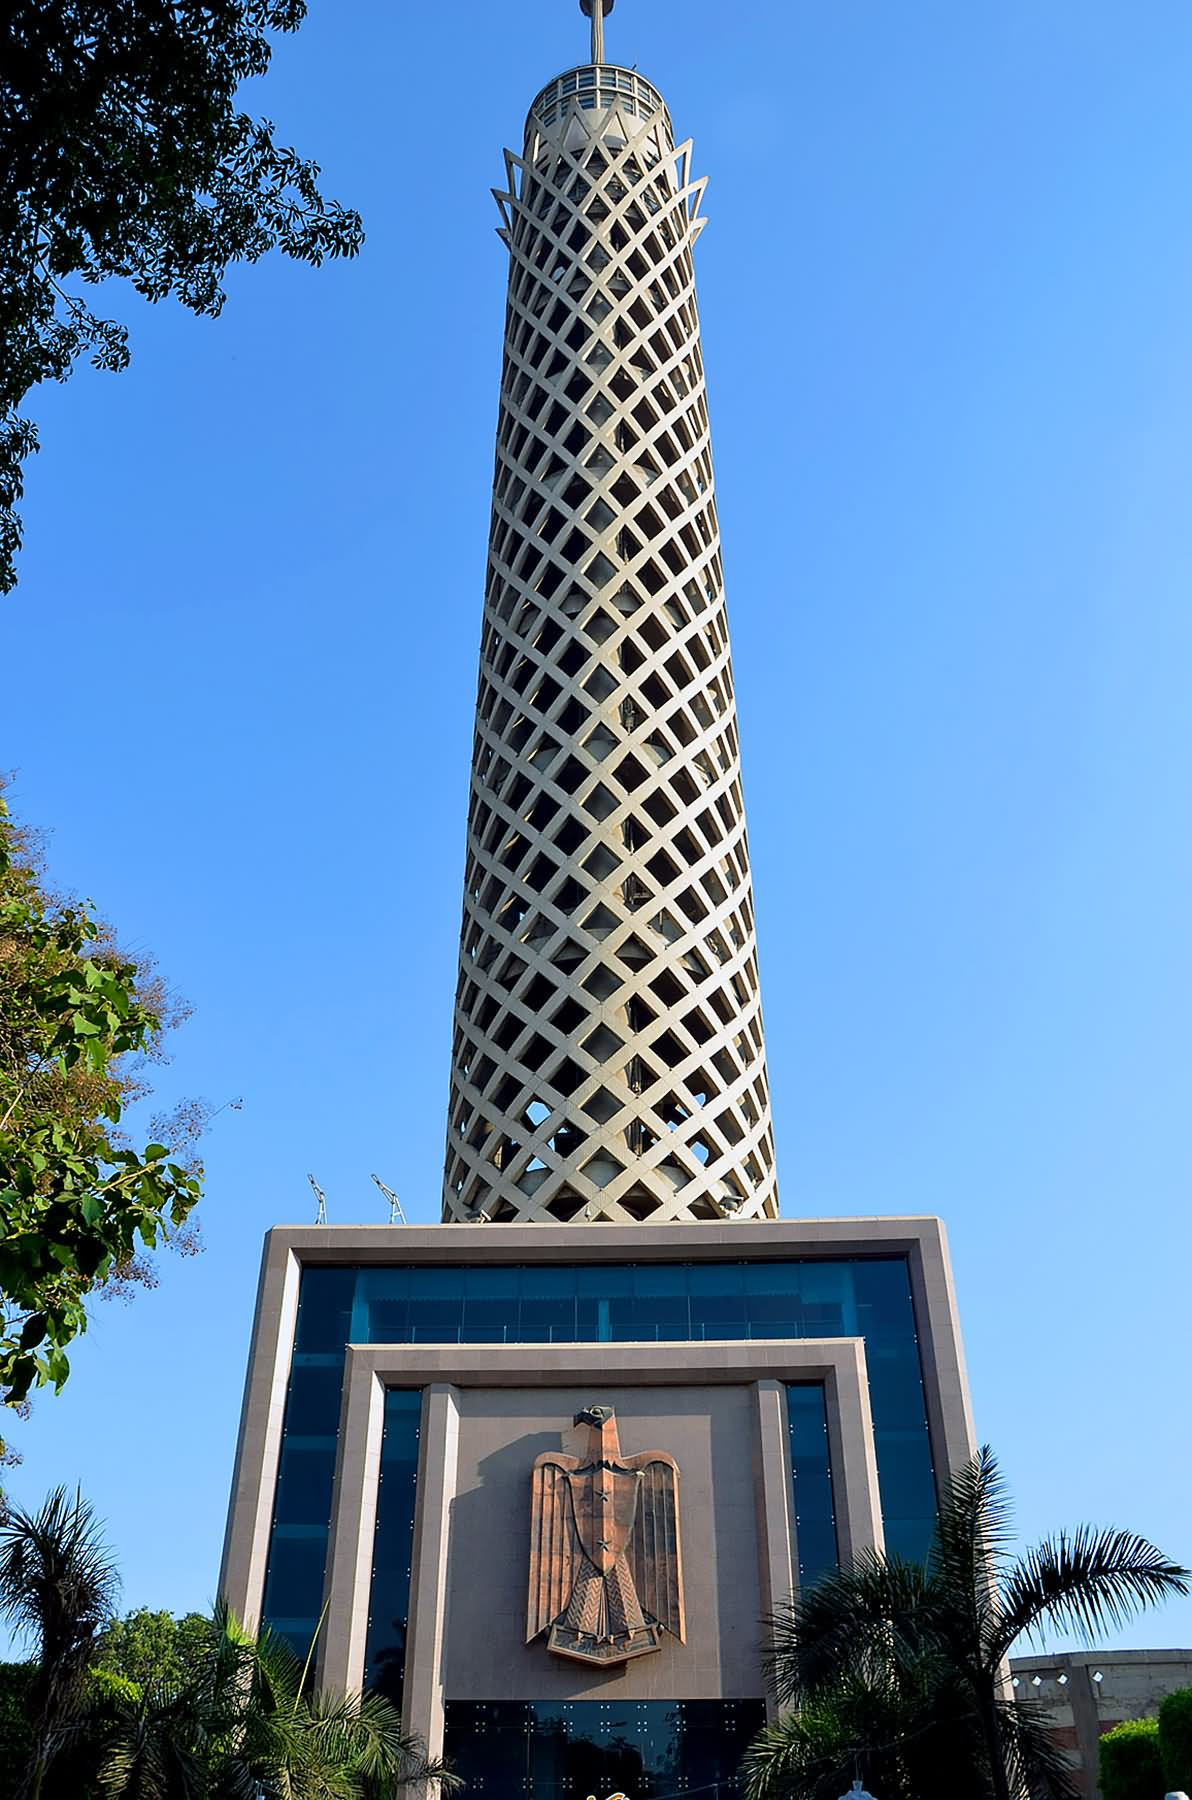 40 most beautiful pictures and images of cairo tower egypt for Cairo mobel